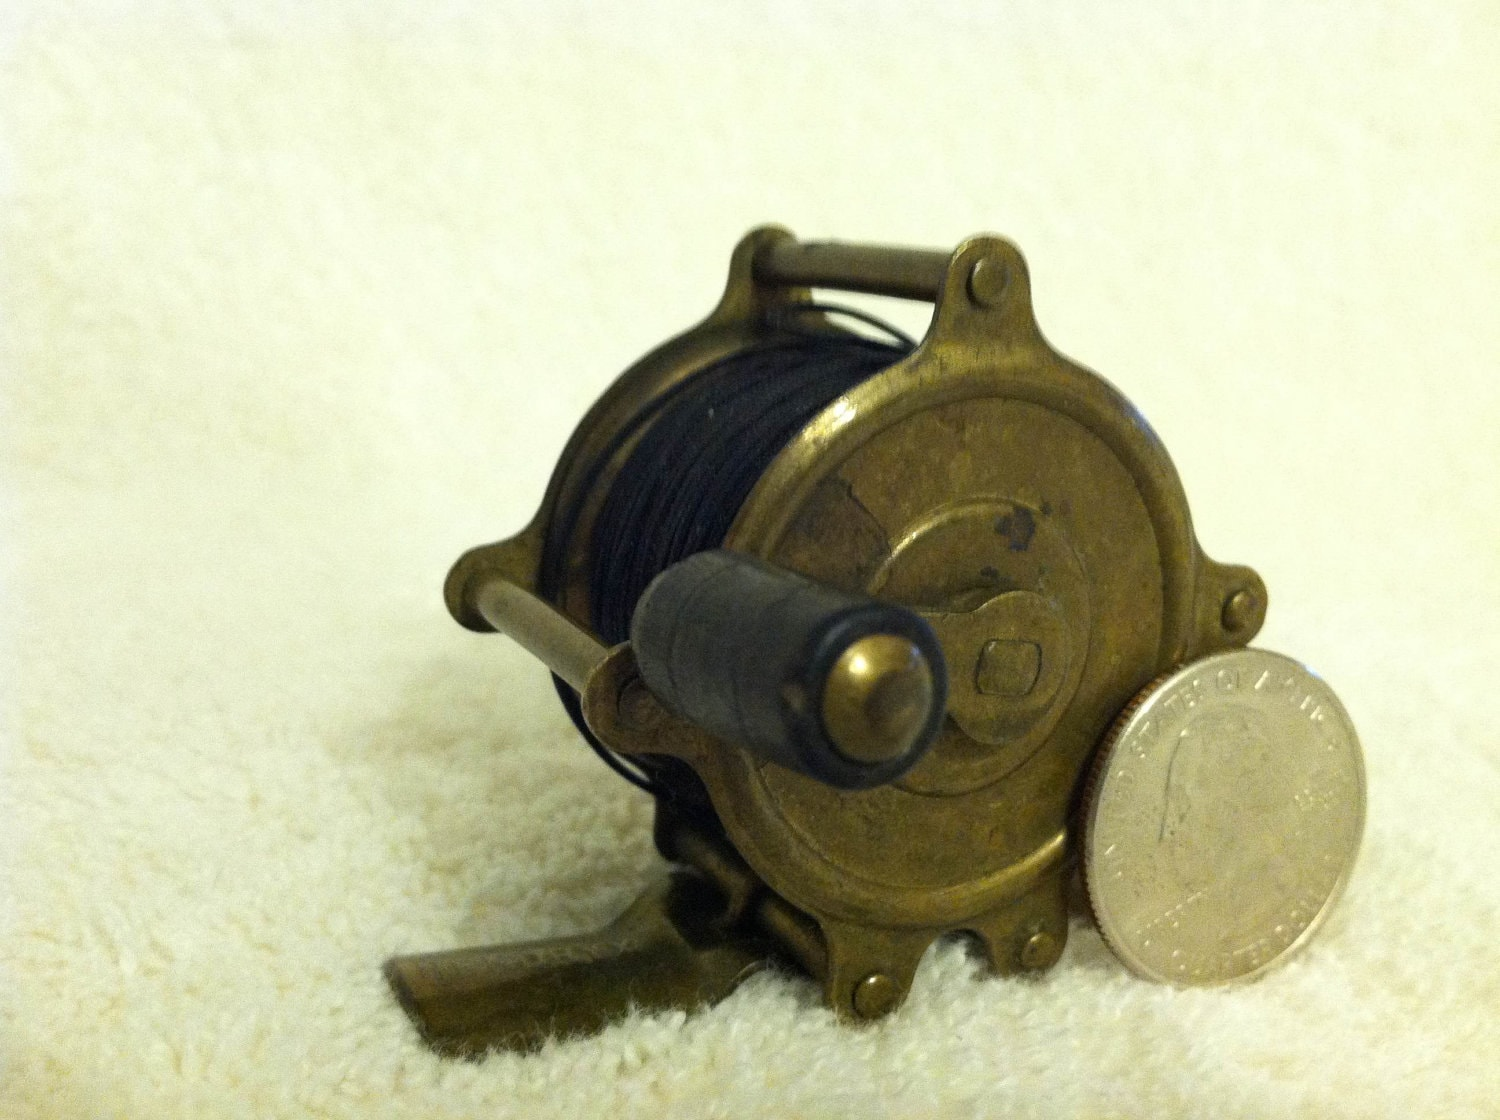 Vintage brass fly fishing reel made by hendryx for Antique fishing reels